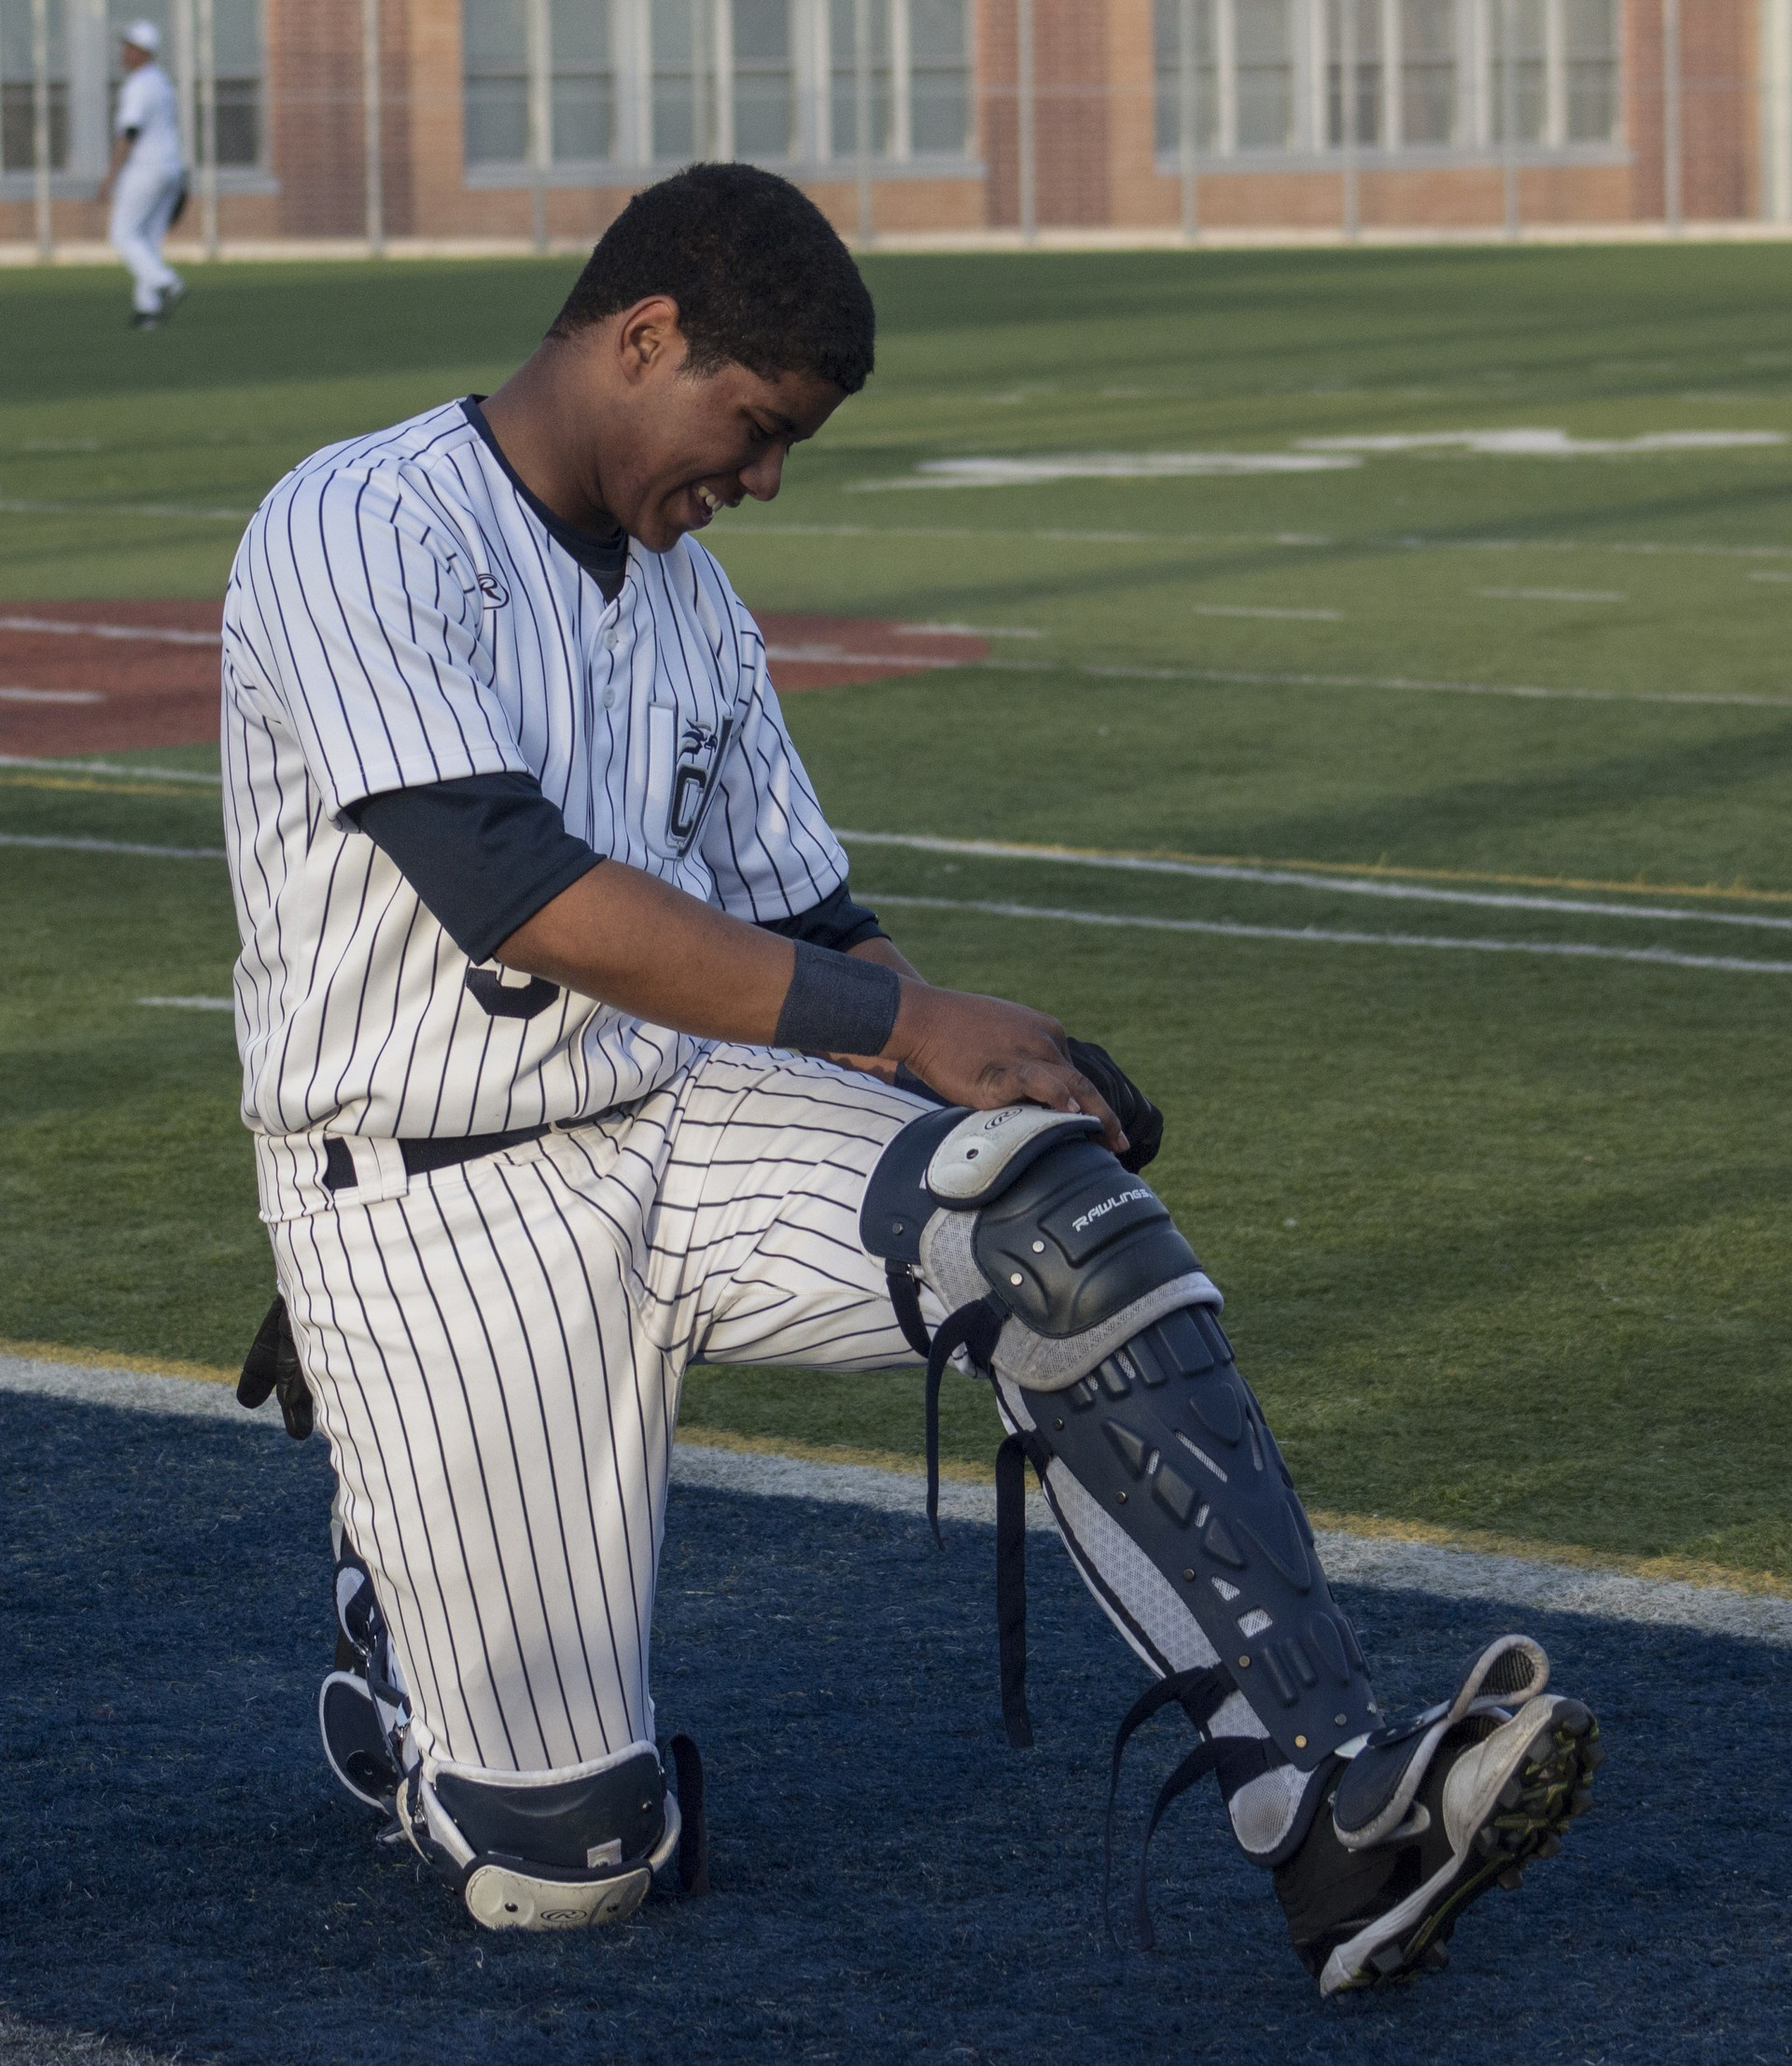 catcher fixing shin guard